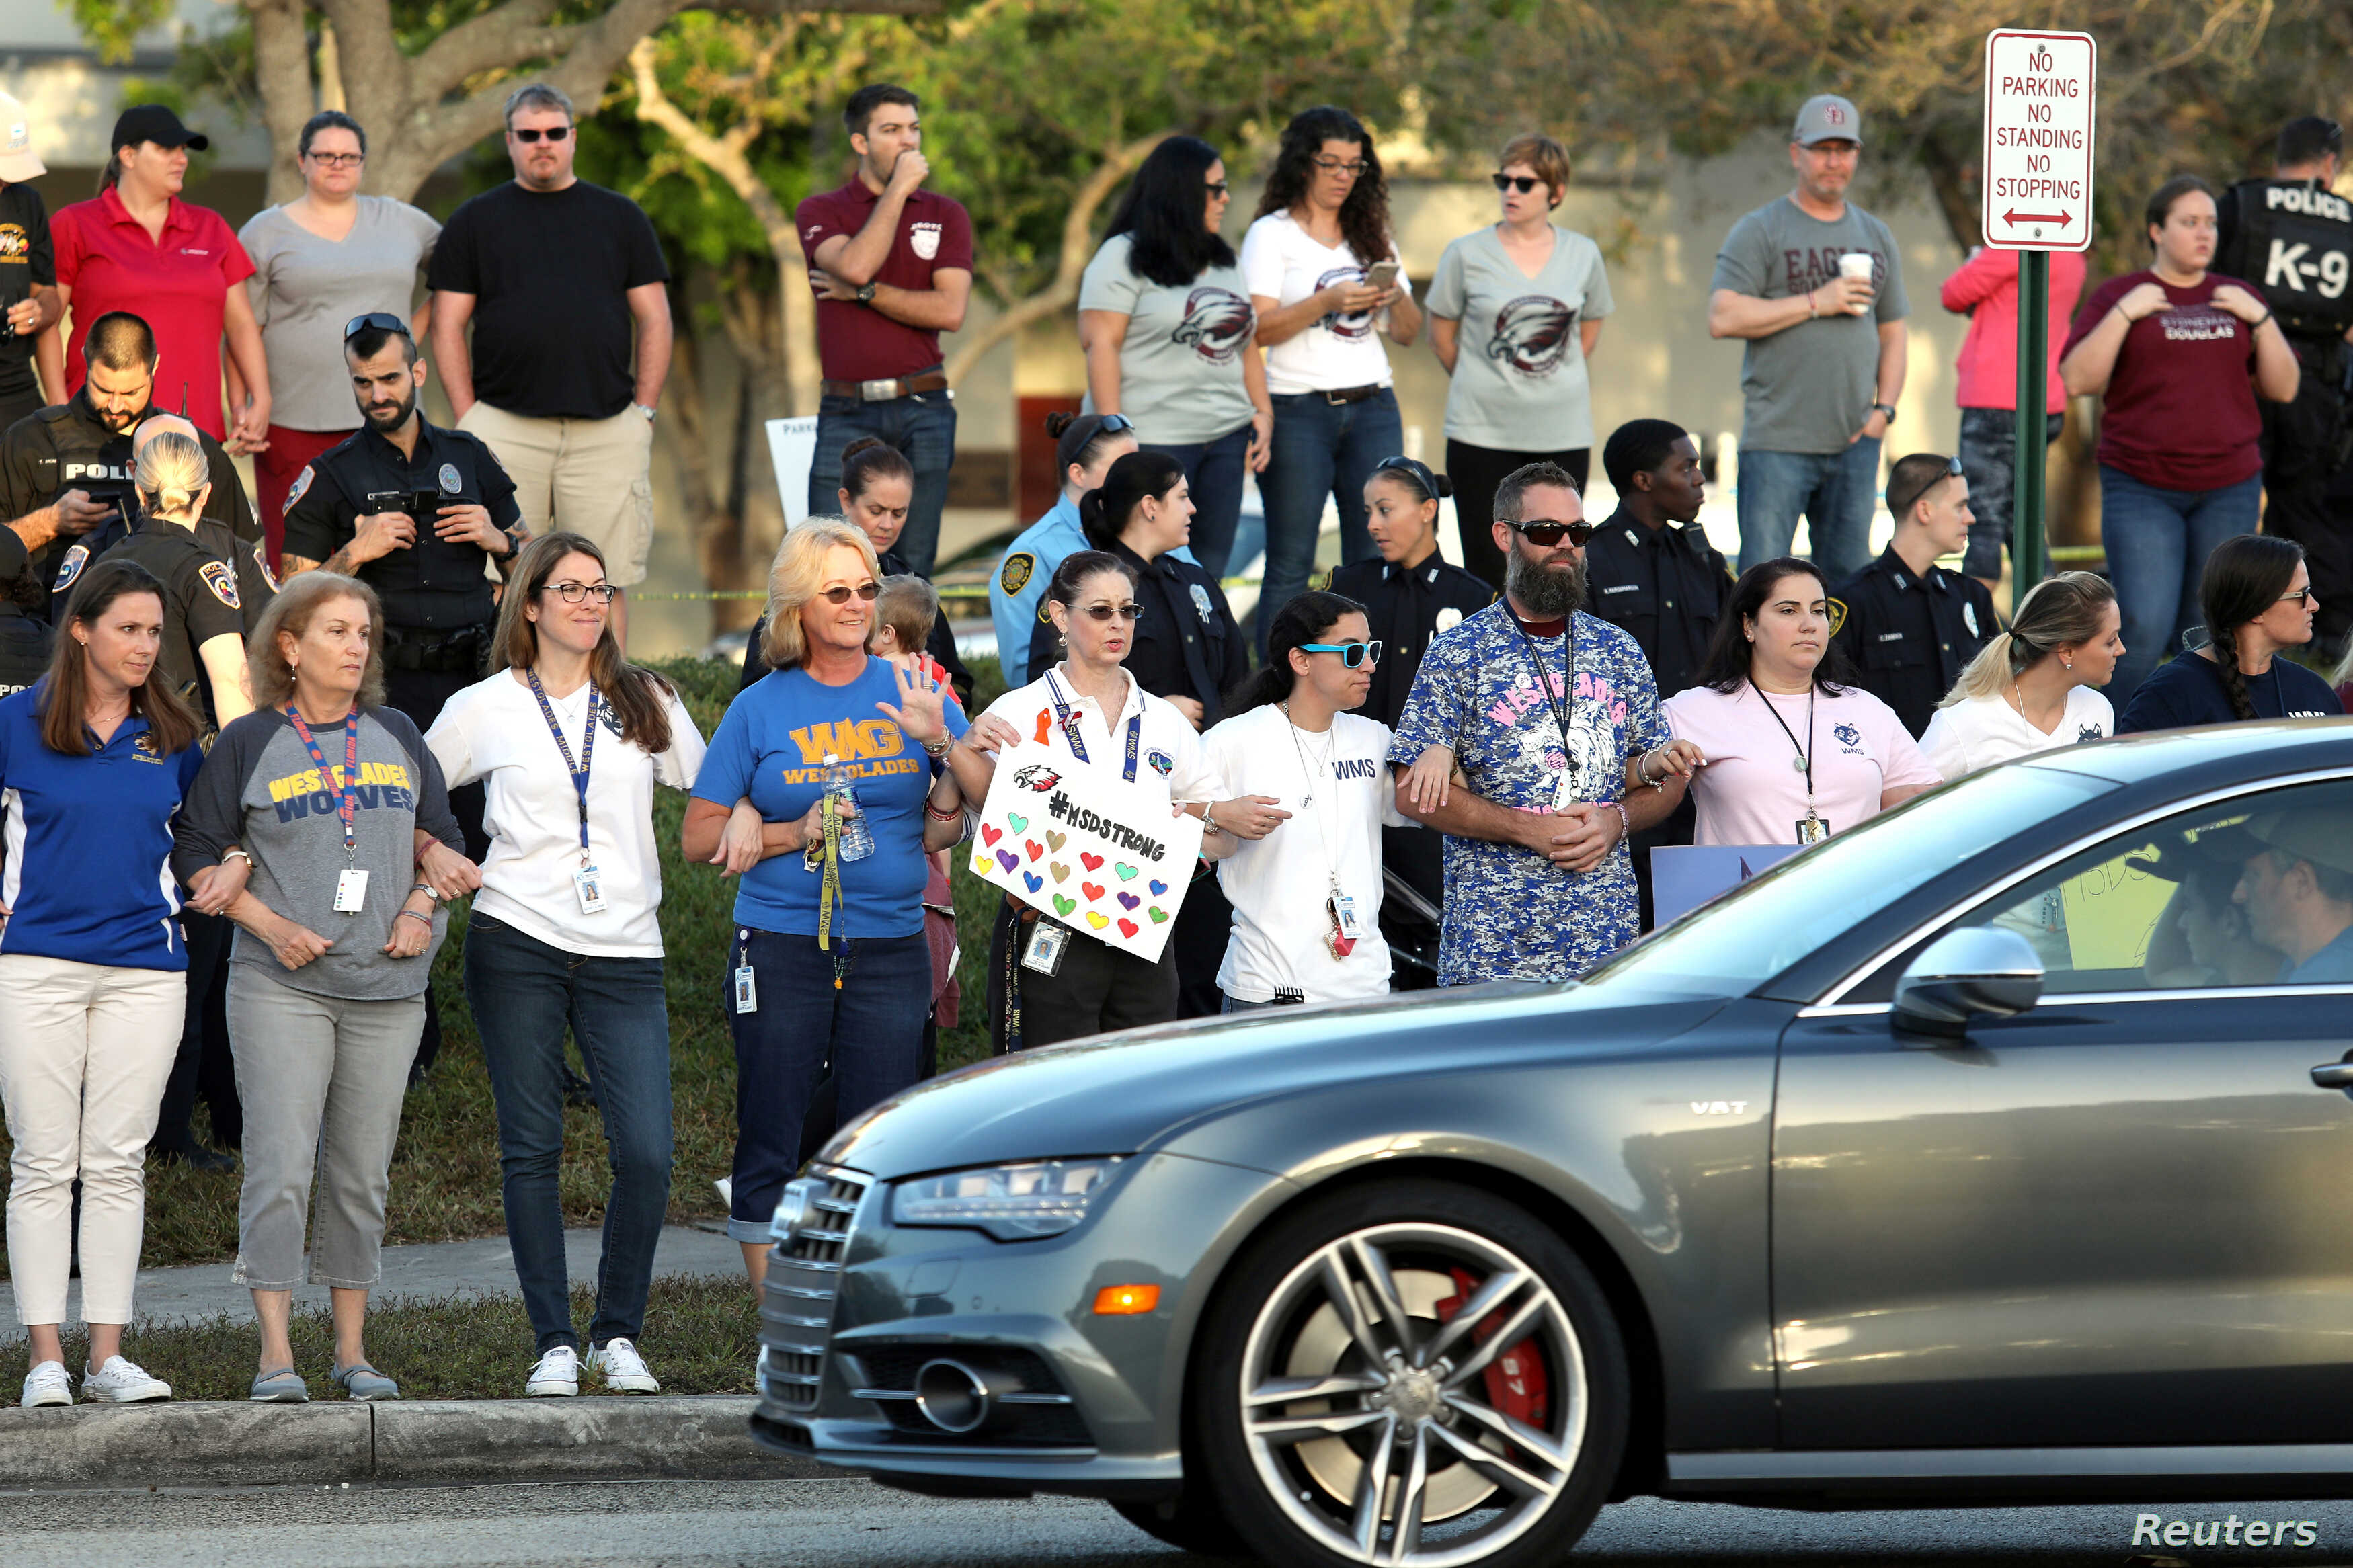 Local residents show their support as students arrive at Marjory Stoneman Douglas High School for the first time since the mass shooting in Parkland, Florida, Feb. 28, 2018.